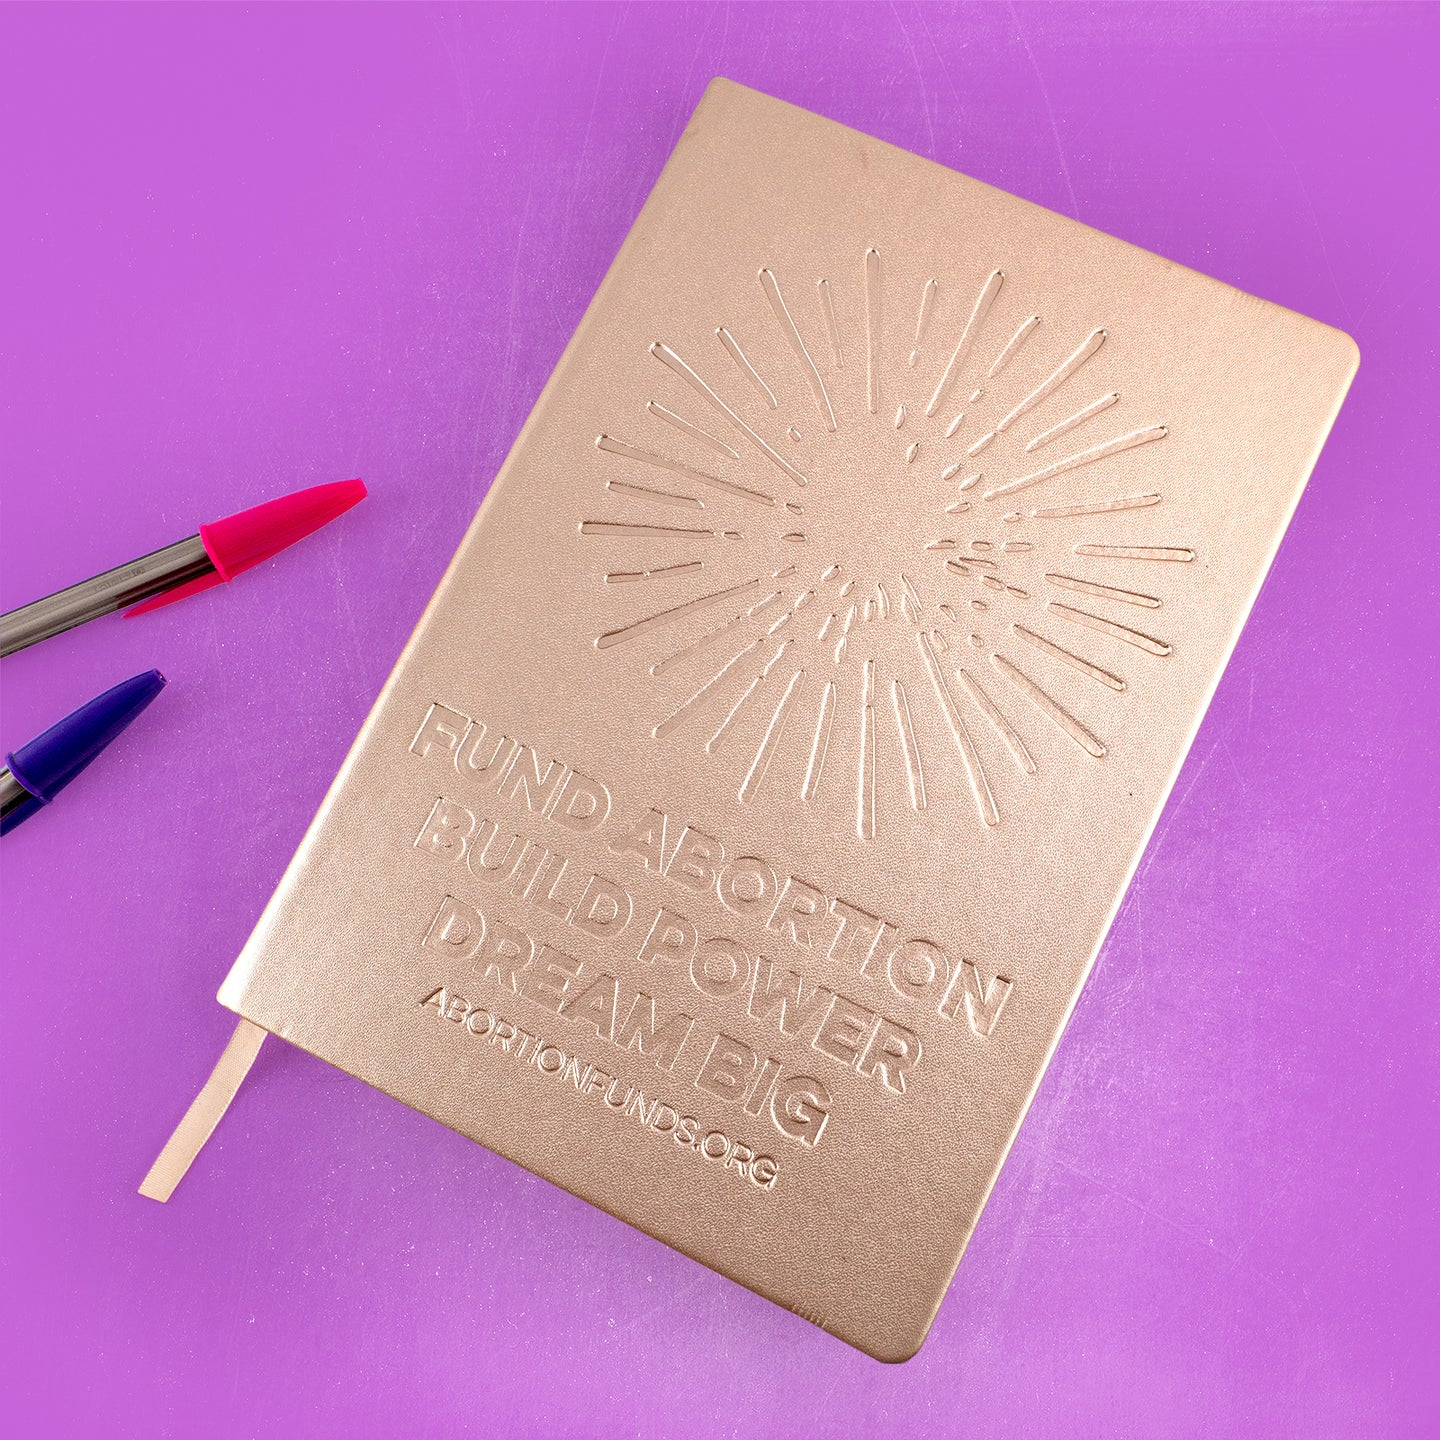 Photo of a journal with a metallic gold cover, debossed with an illustration of a firework and the text,